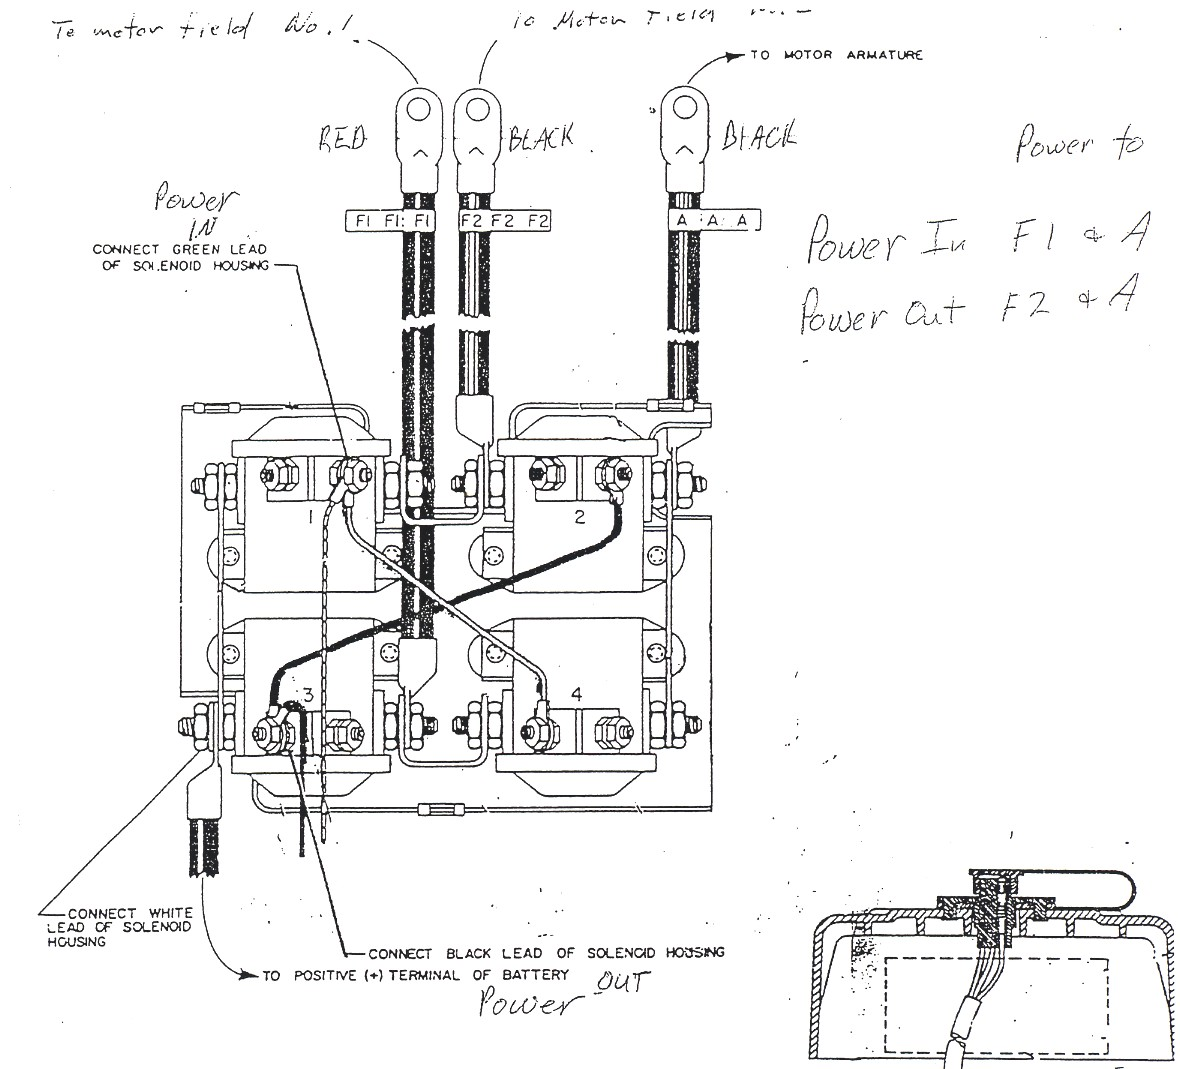 80-unled_0689e0d674eea10f43090f1fea7c785fc8250009 Winch Wiring Diagrams on winch switch diagram, electrical diagram, winch relay, kanban process flow diagram, winch cable, badland winch wire diagram, winch assembly diagram, circuit diagram, parts diagram, winch tractor, door lock diagram, ball joints diagram, batteries diagram, alternator diagram, windshield diagram, remote start diagram, rear end diagram, coolant diagram, winch solenoid diagram, steering column diagram,